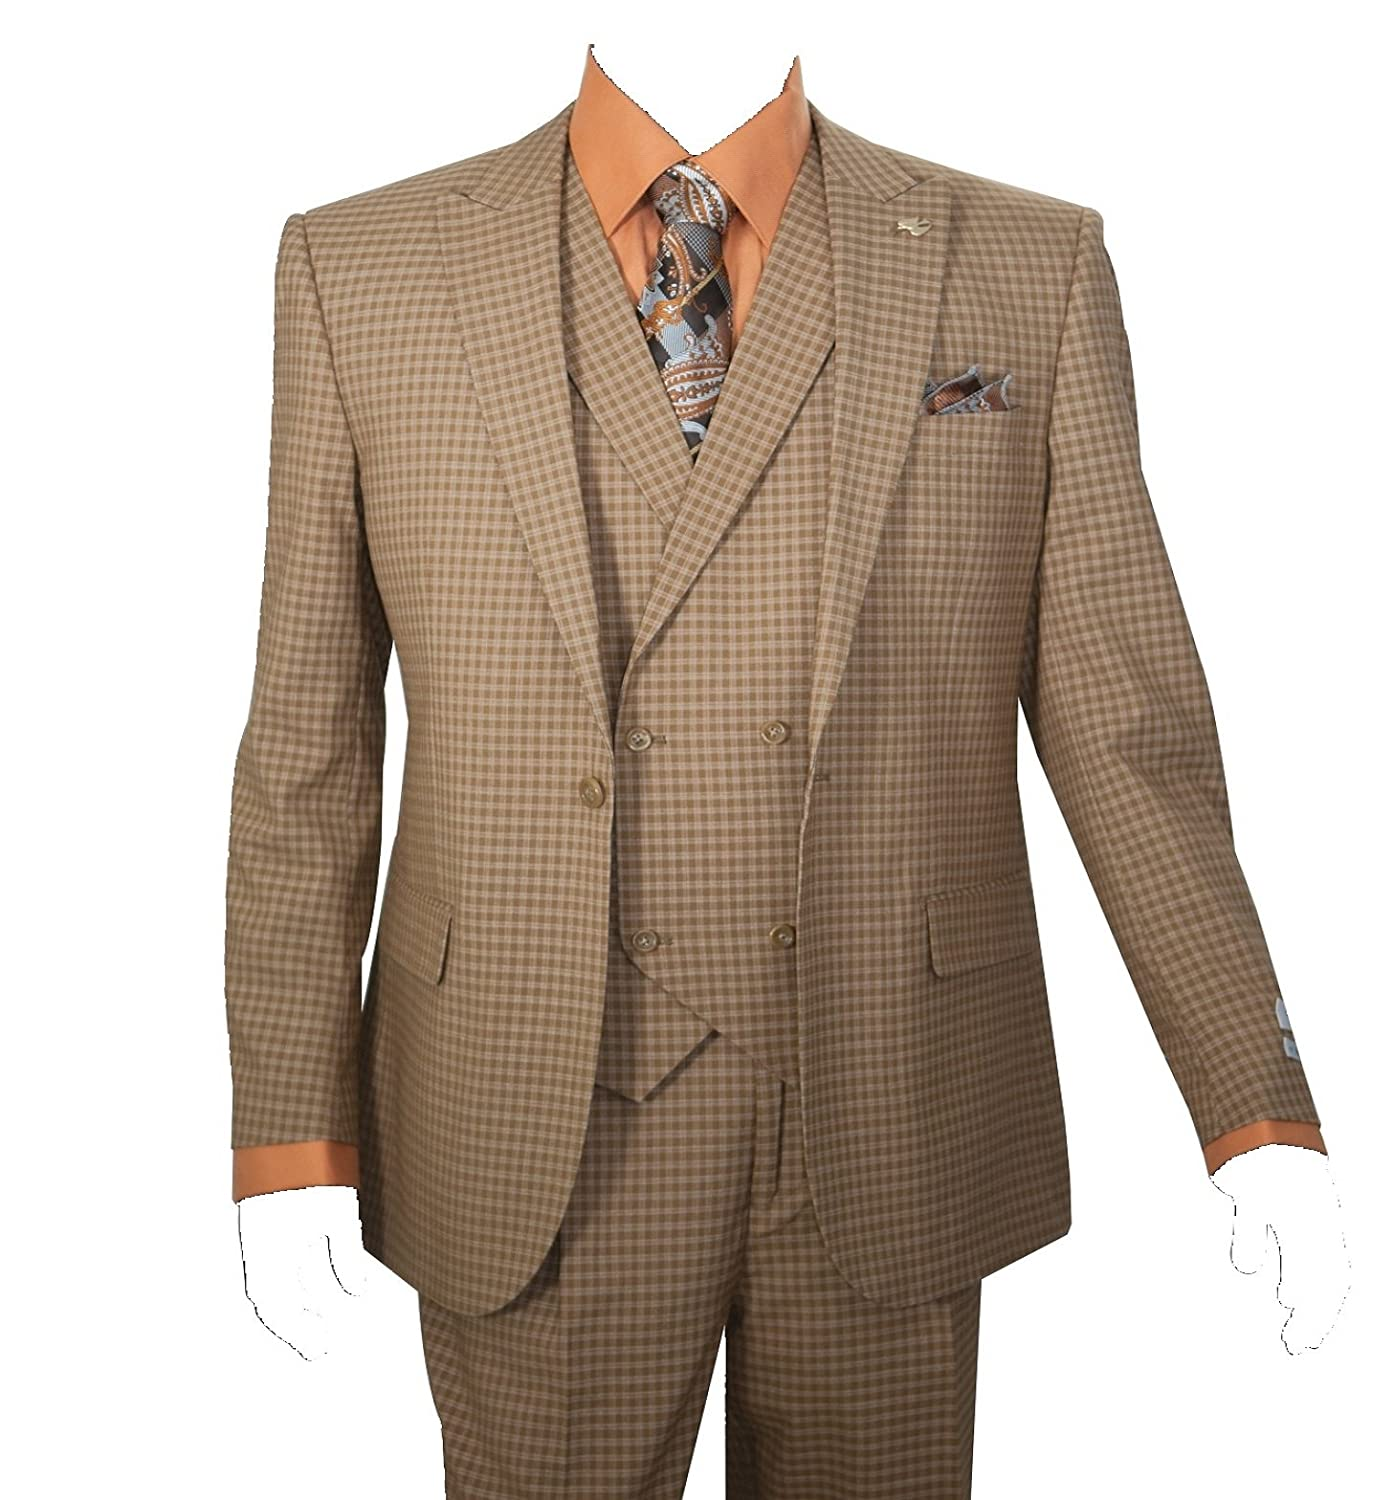 Mens 3 Piece Single Button Mini-Plaid Pattern Suit (Taupe) $149.99 AT vintagedancer.com